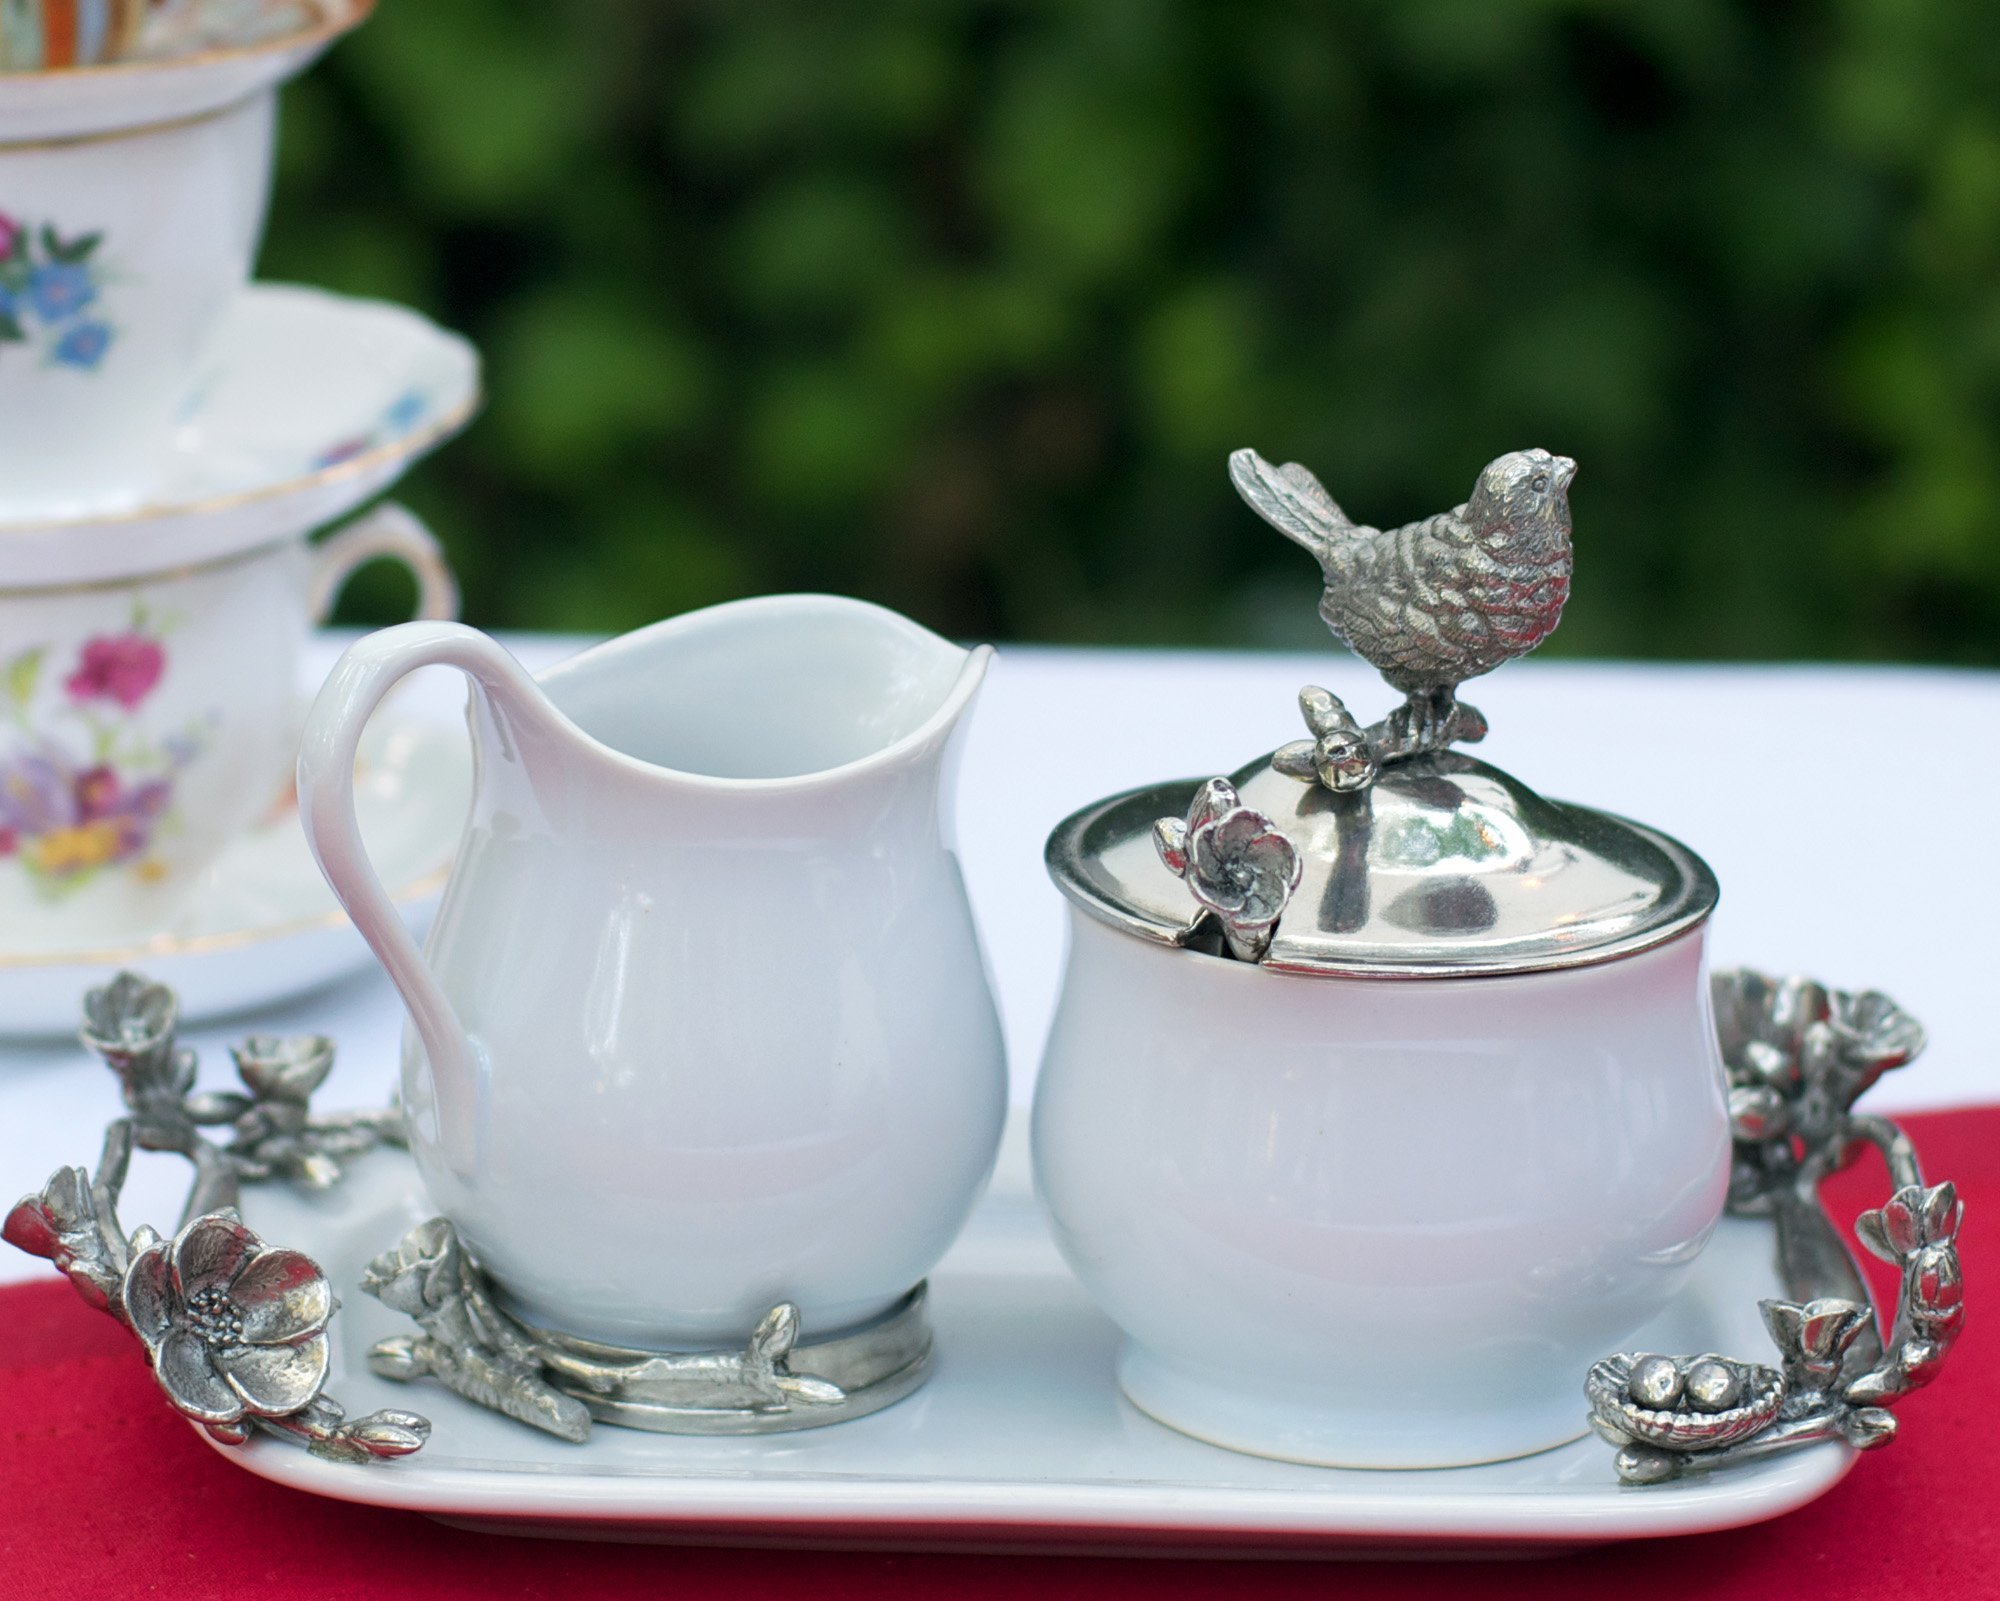 Vagabond House Stoneware Creamer Set - Pewter Song Bird 12.25'' Long Tray with Creamer, Sugar Bowl and Spoon